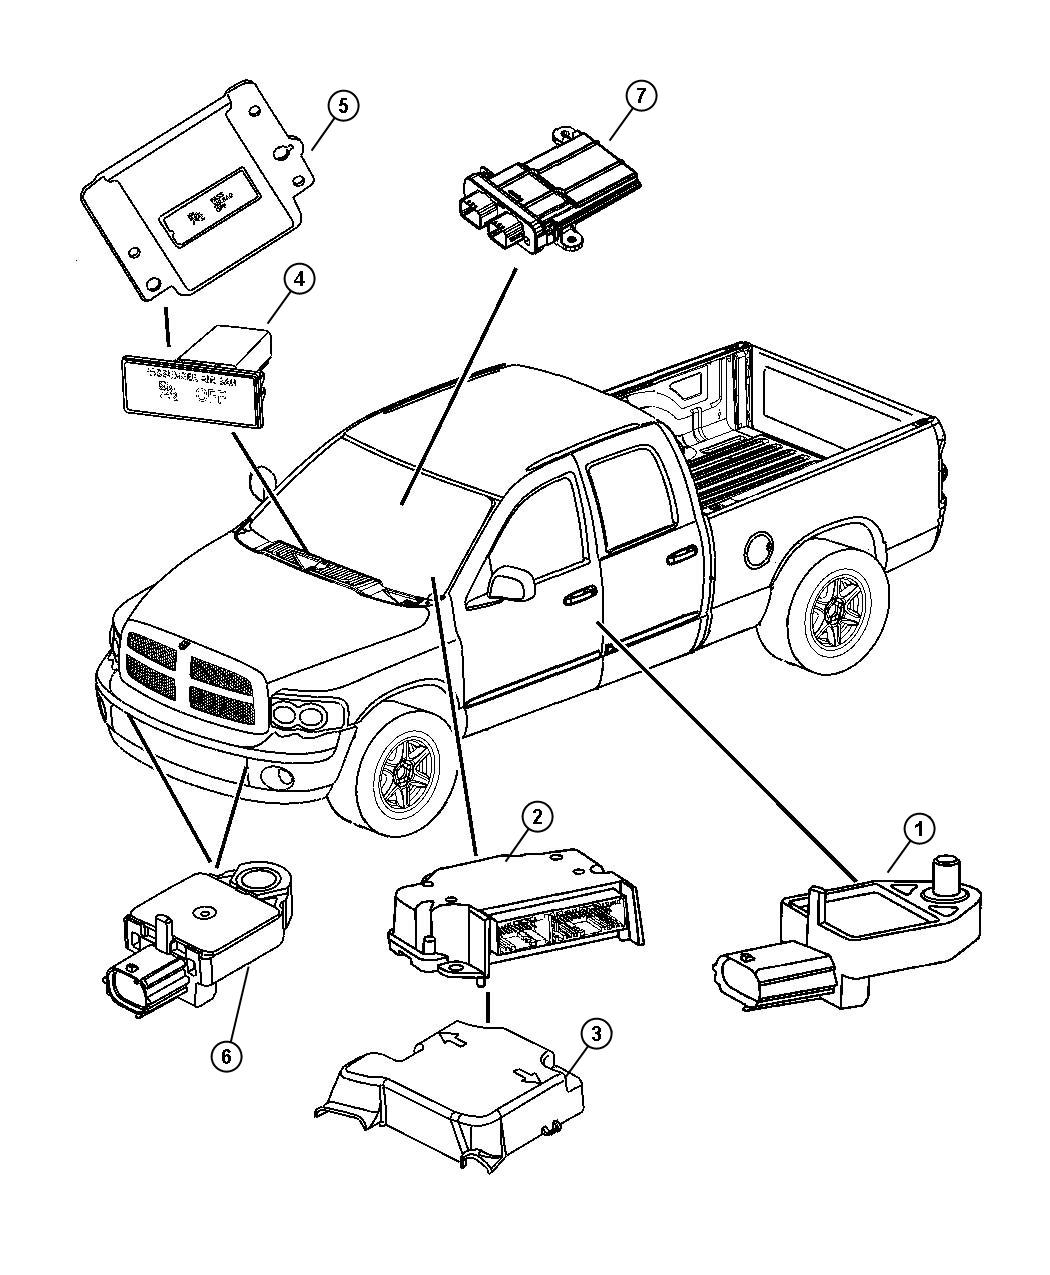 2008 Dodge Ram 1500 Remote Start Wiring Diagram